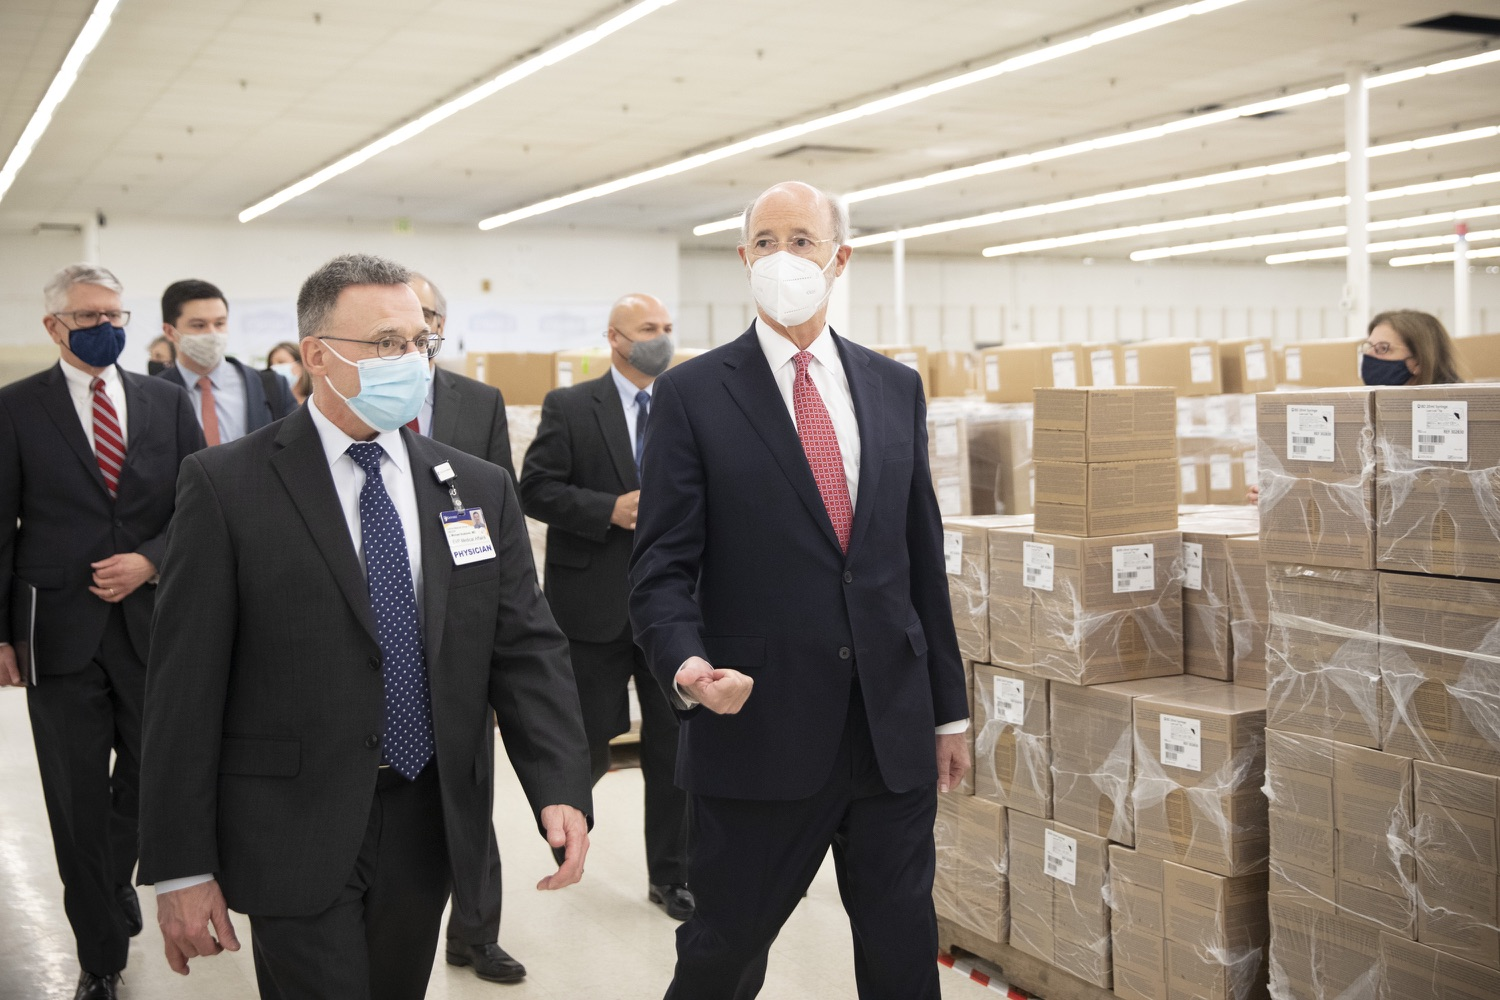 """<a href=""""https://filesource.wostreaming.net/commonwealthofpa/photo/18682_gov_vaccineClinic_dz_020.jpg"""" target=""""_blank"""">⇣Download Photo<br></a>Pennsylvania Governor Tom Wolf touring the regional vaccination clinic with Dr. J. Michael Scalzone, MD.  Governor Tom Wolf today visited the Guthrie Health vaccine clinic in Sayre, Bradford County today to tour this clinic providing vaccines to a large swath of rural residents and to talk about progress in vaccinating Pennsylvanians now that eligibility is open to all individuals age 16 and older.  Sayre, PA   April 21, 2021"""